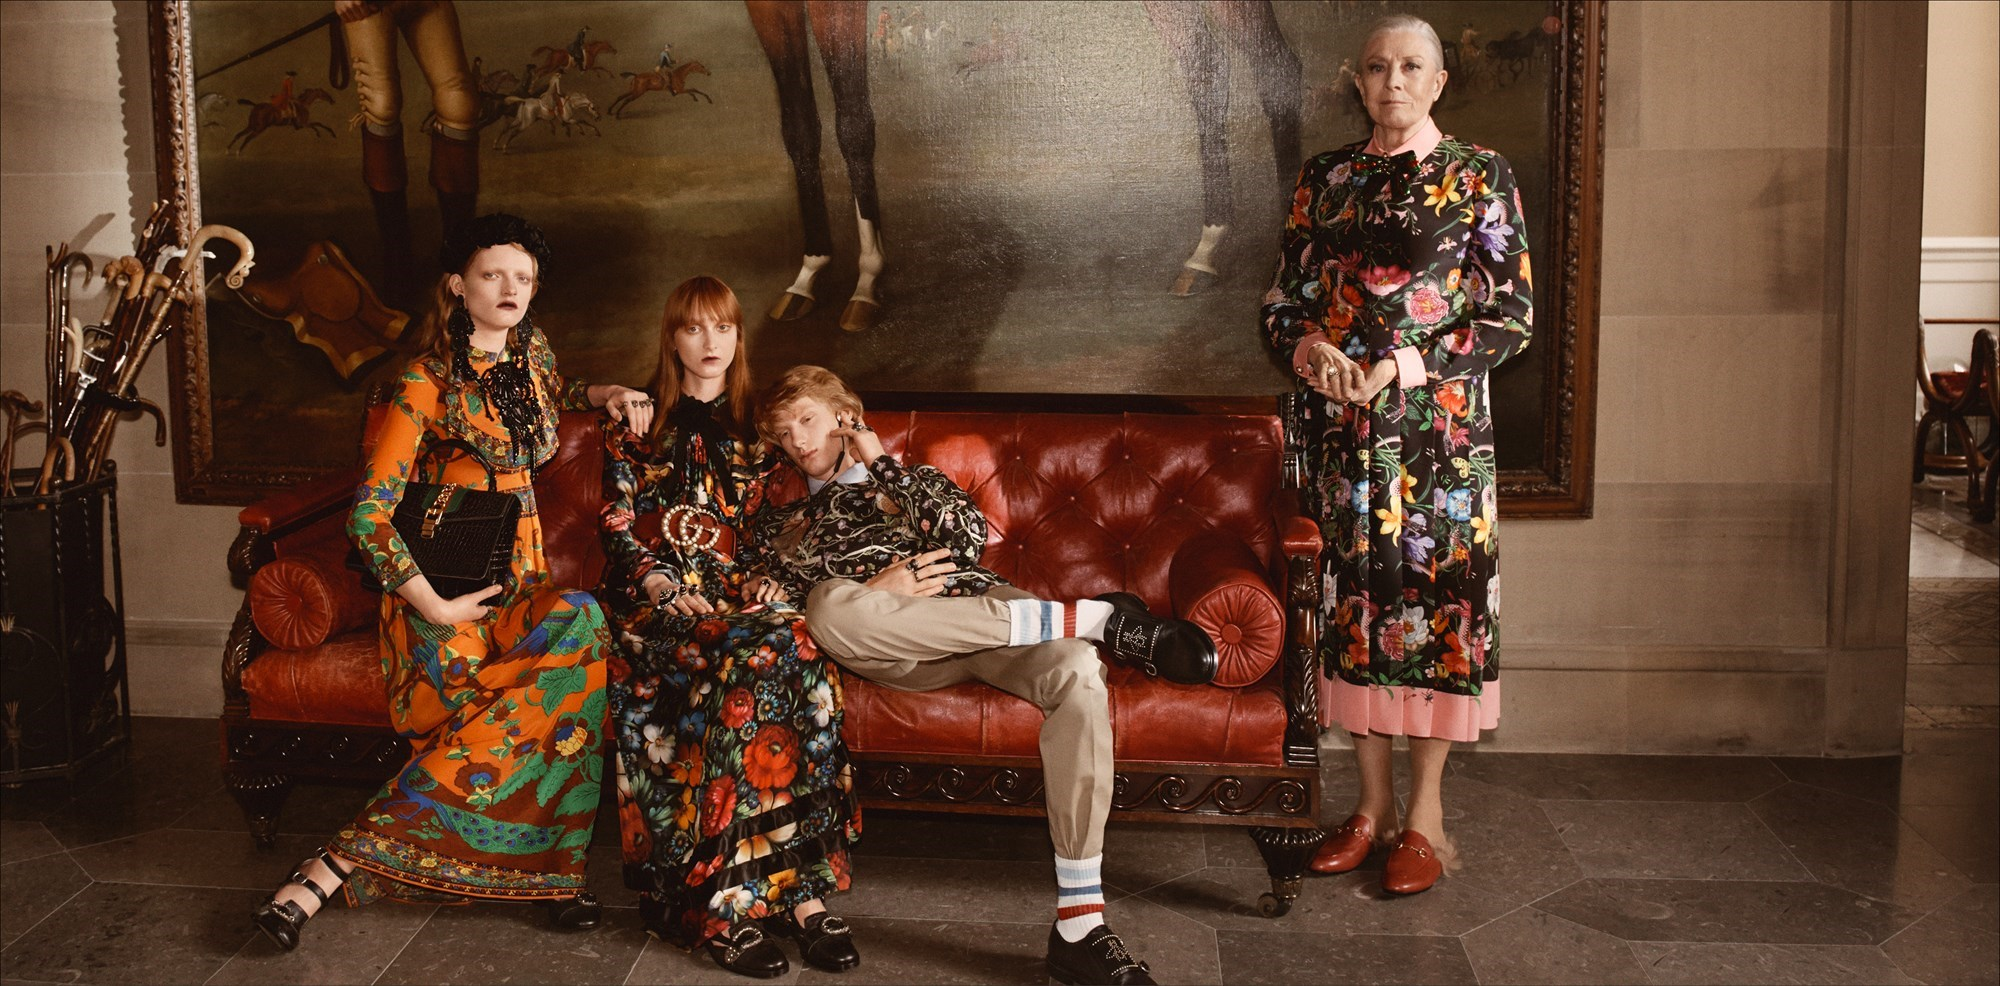 An image from Gucci's 2018 Cruise Collection